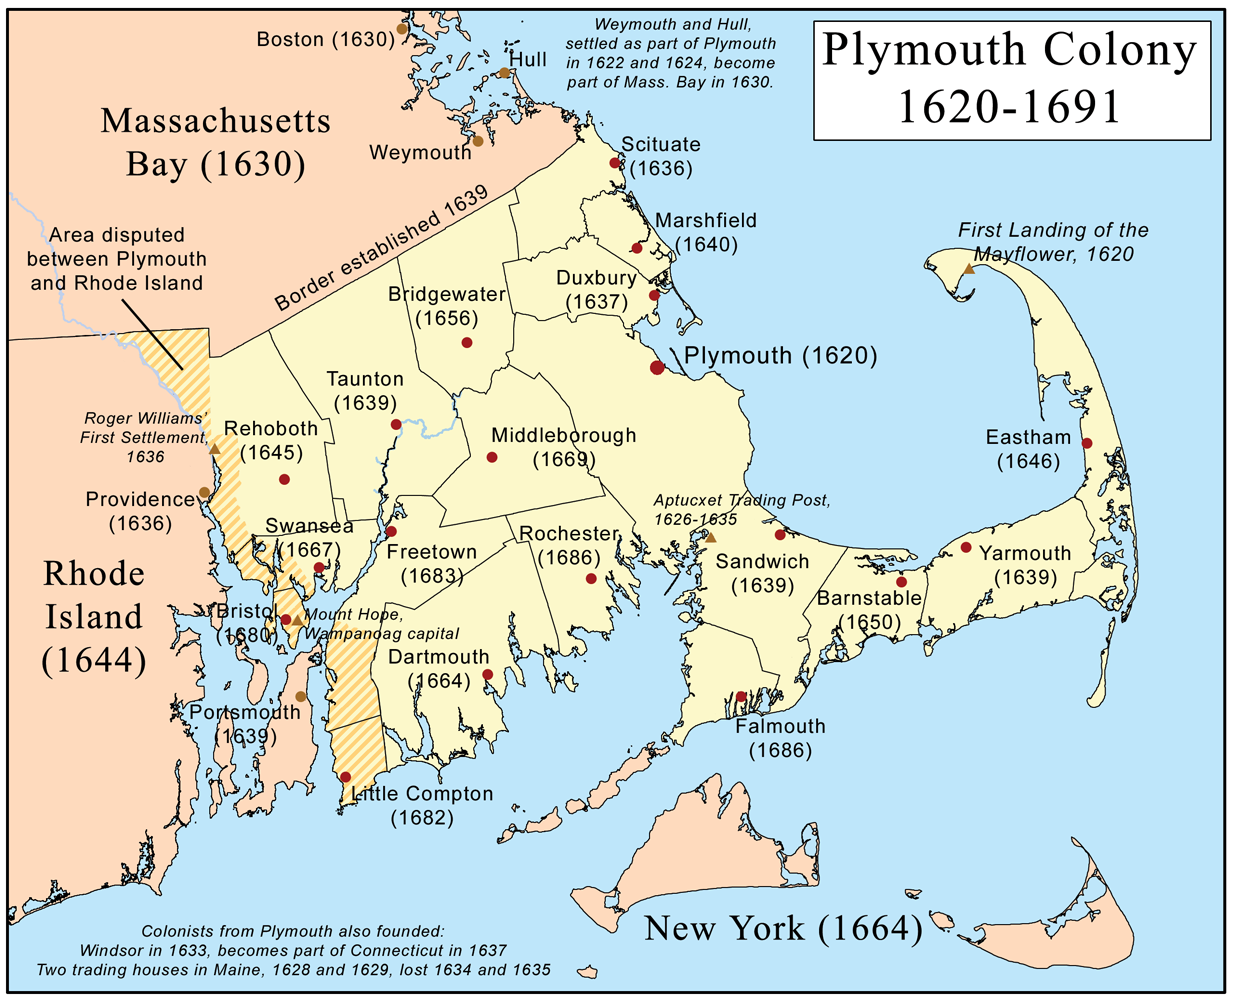 Pilgrims Rock Researching Your Plymouth Colony Ancestors